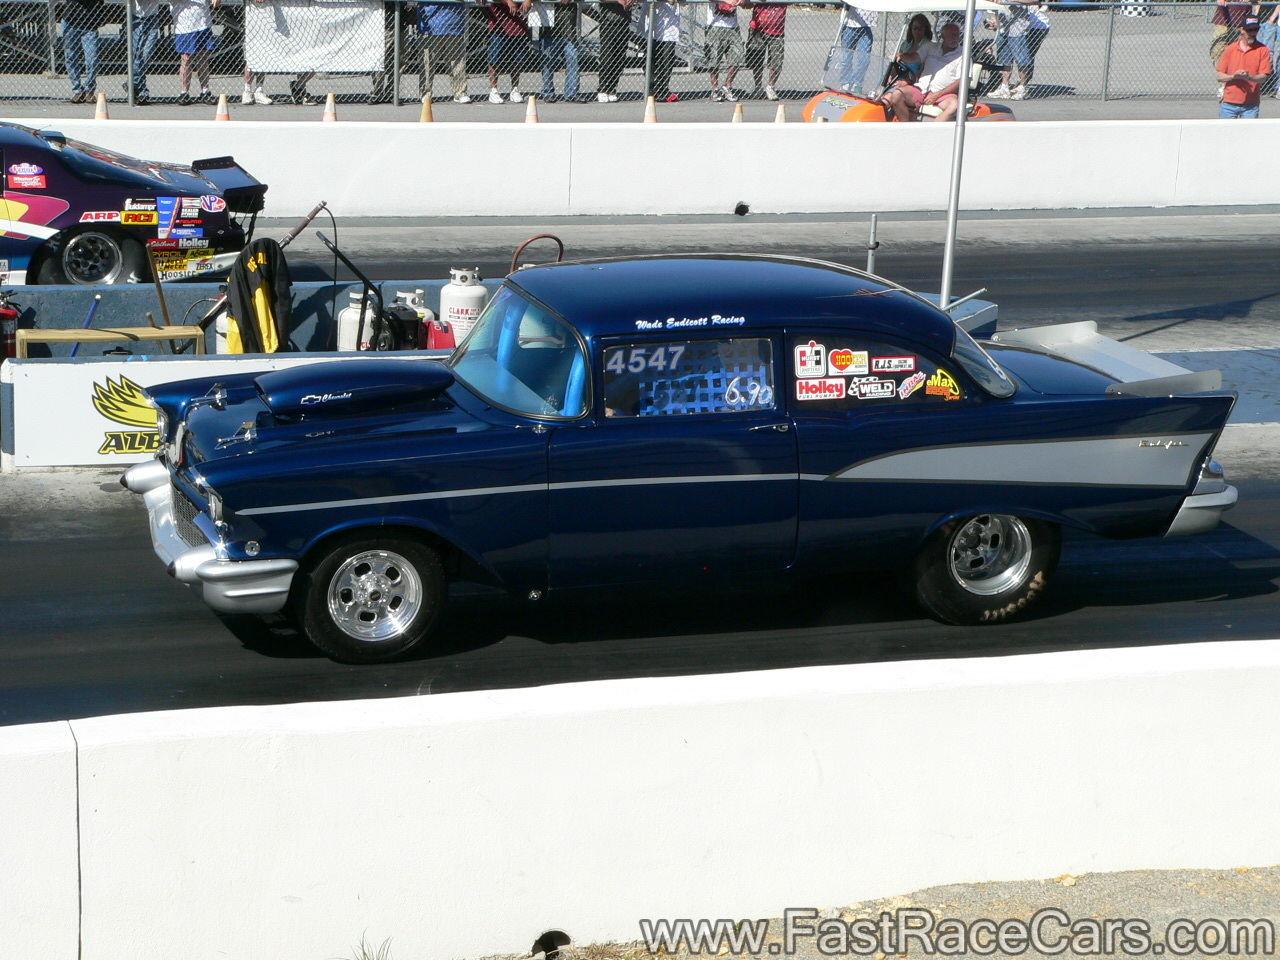 55 Chevy Drag Race Car http://www.fastracecars.com/categories/Drag%20Race%20Cars/55%20-%2057%20Chevrolets/large/shoebox-4.html